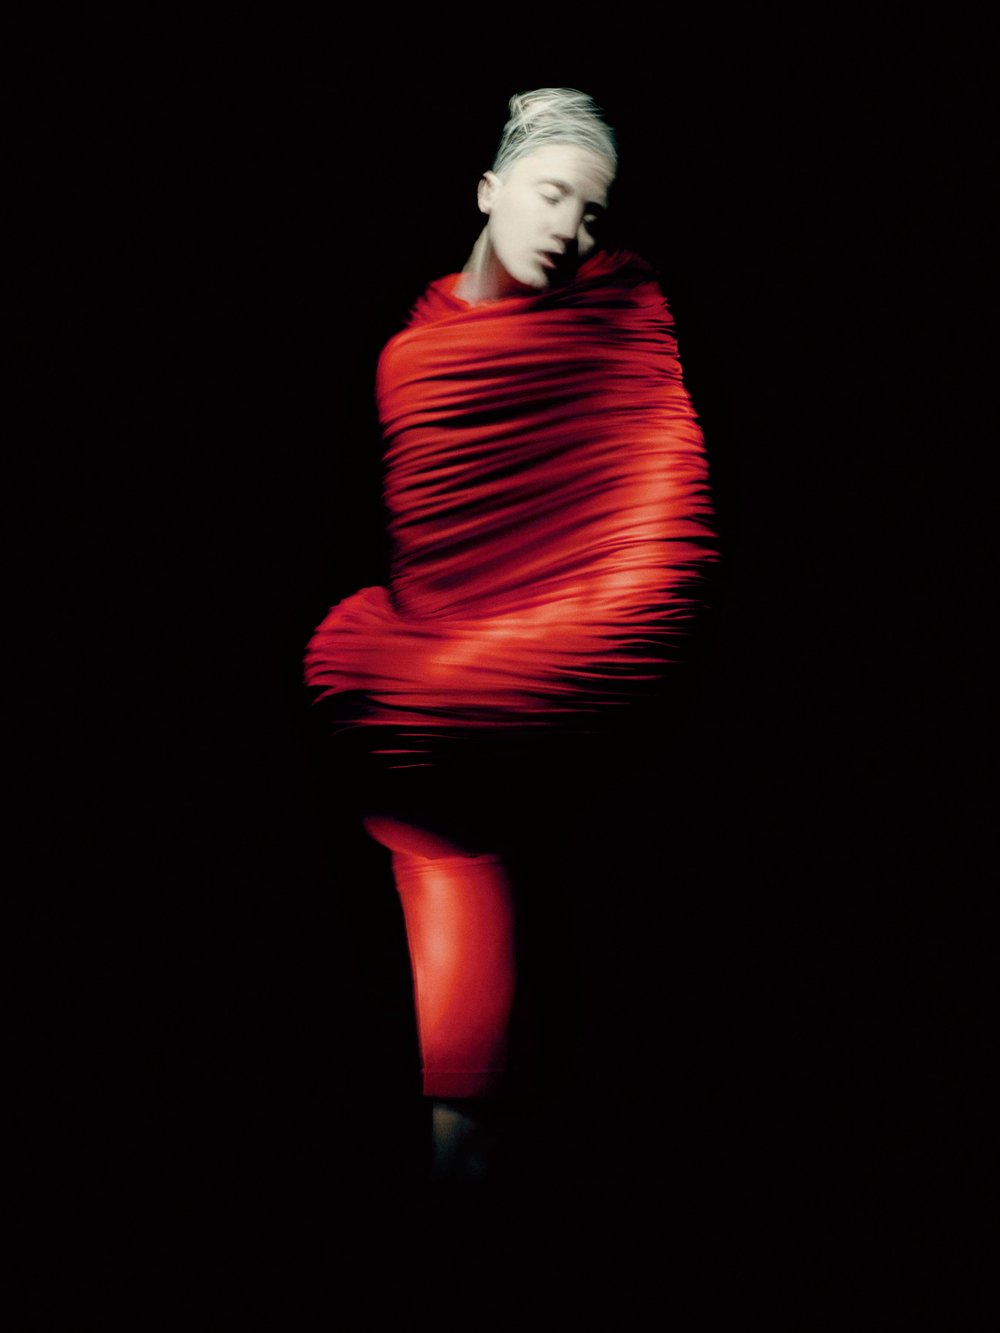 Rei Kawakubo for Comme des Garçons: Body Meets Dress–Dress Meets Body (S/S'97; Courtesy of Comme des Garçons.) Photograph by © Paolo Roversi; Courtesy of The Metropolitan Museum of Art